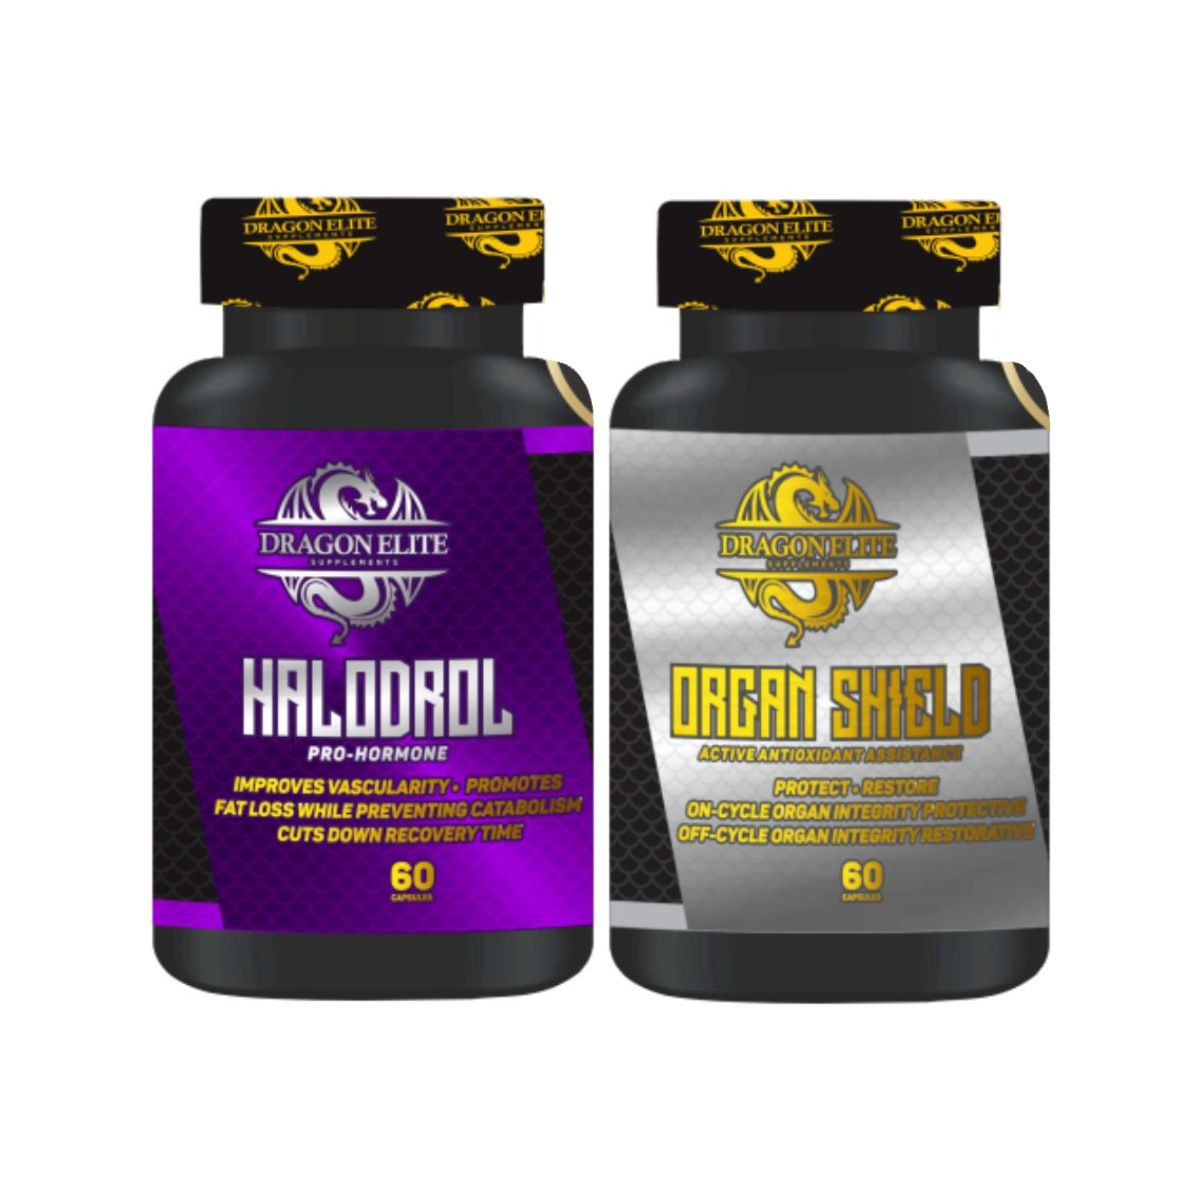 Combo Pró-Hormonal Halodrol + Organ Shield - Dragon Elite